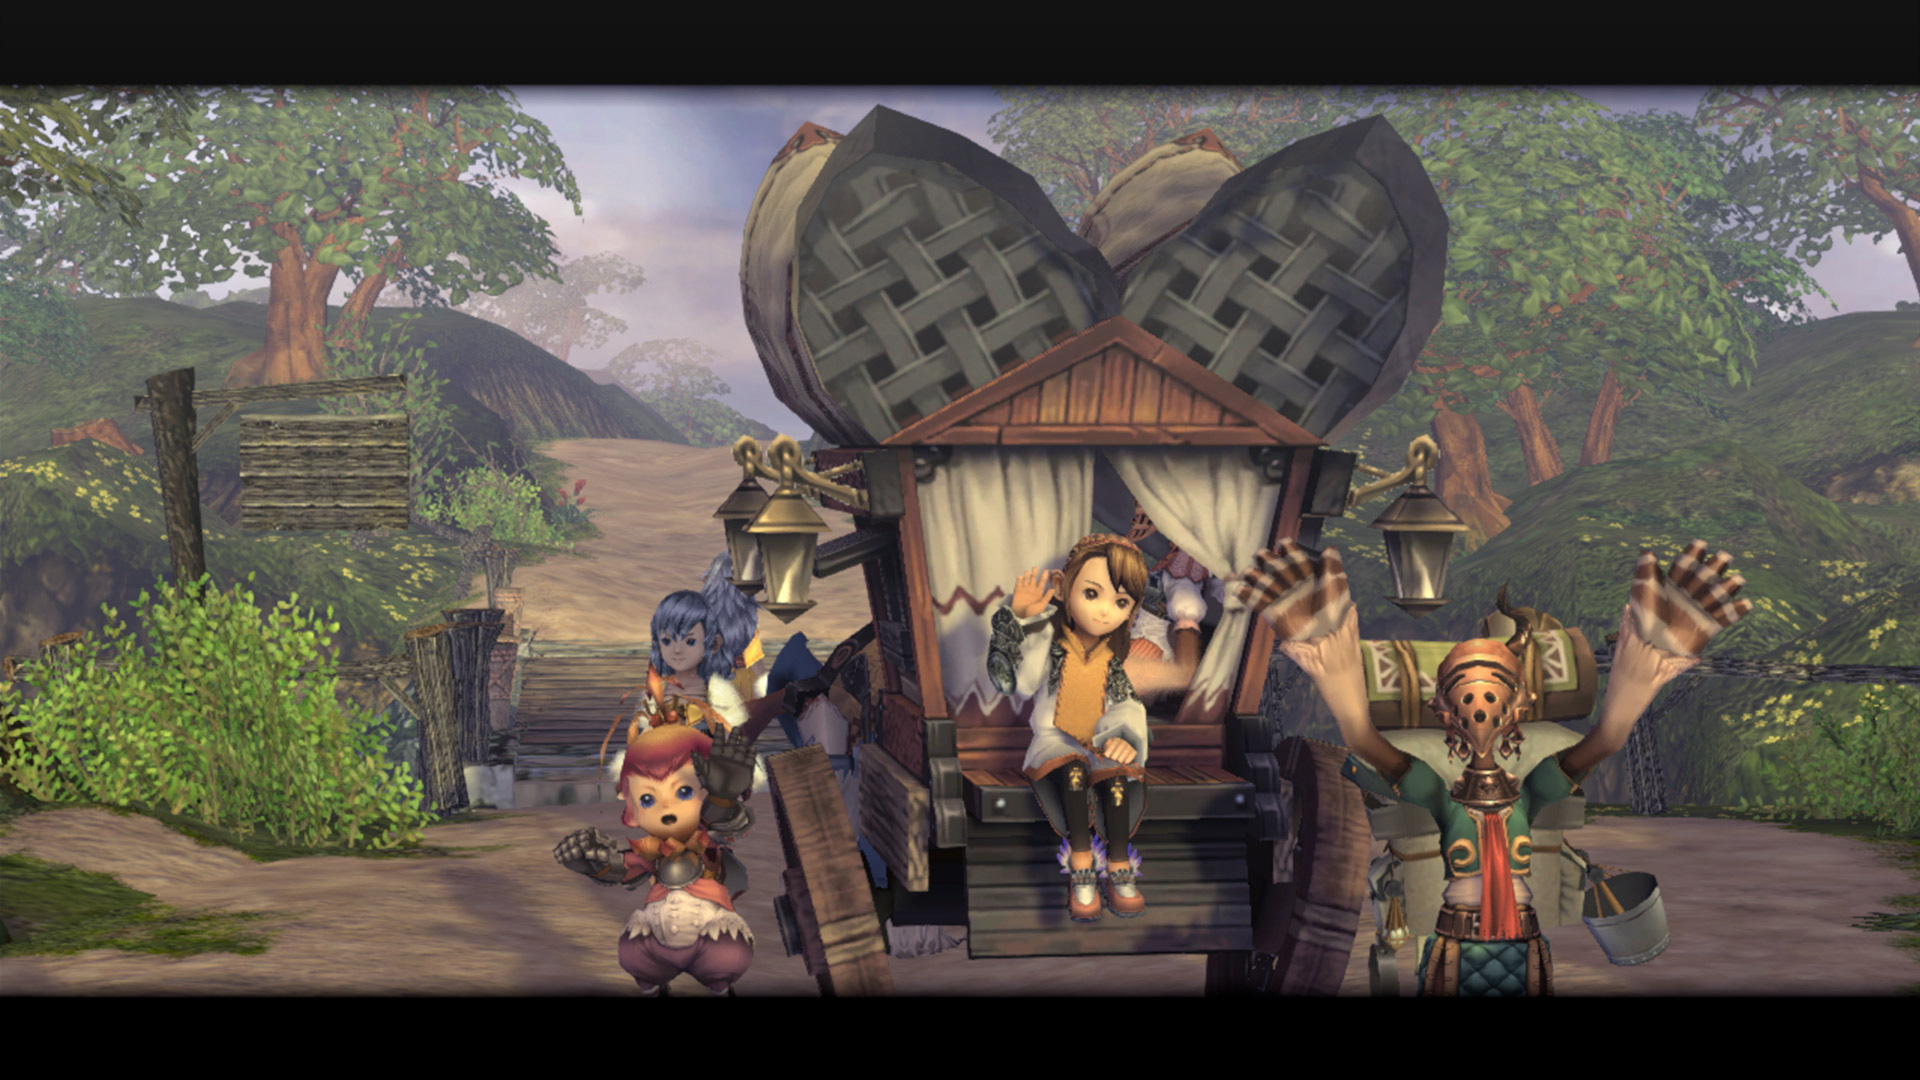 Final Fantasy Crystal Chronicles Remastered Edition releases digitally on August 27 screenshot